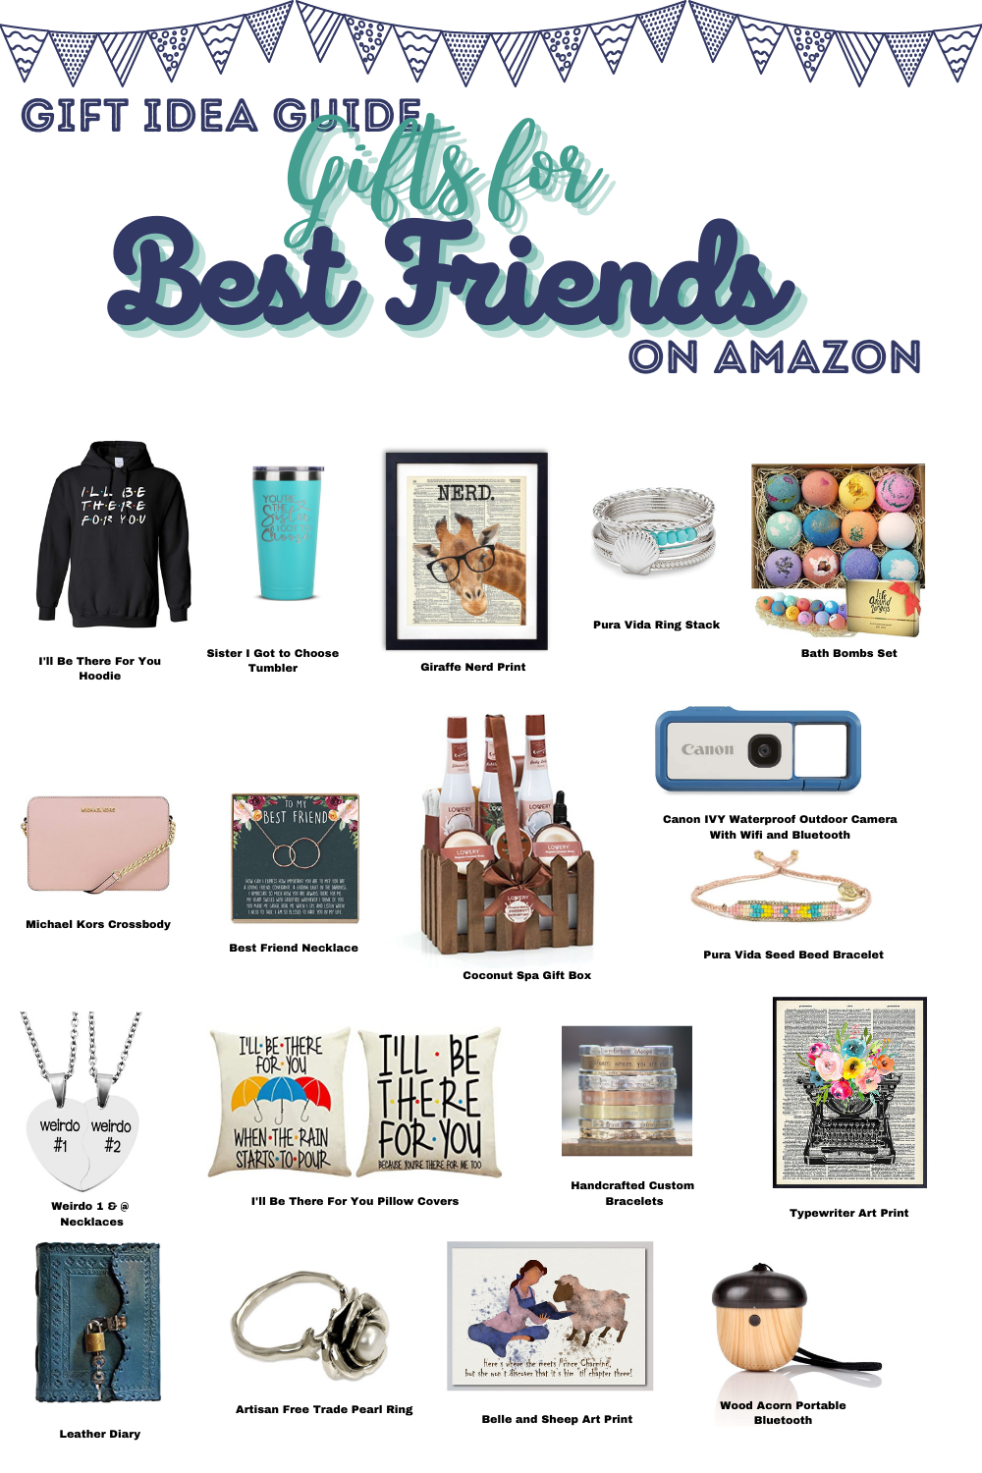 https://bluewillowlane.com/2020/10/21/searching-for-the-perfect-gift-for-your-besties-heres-your-best-of-amazon-shopping-guide/